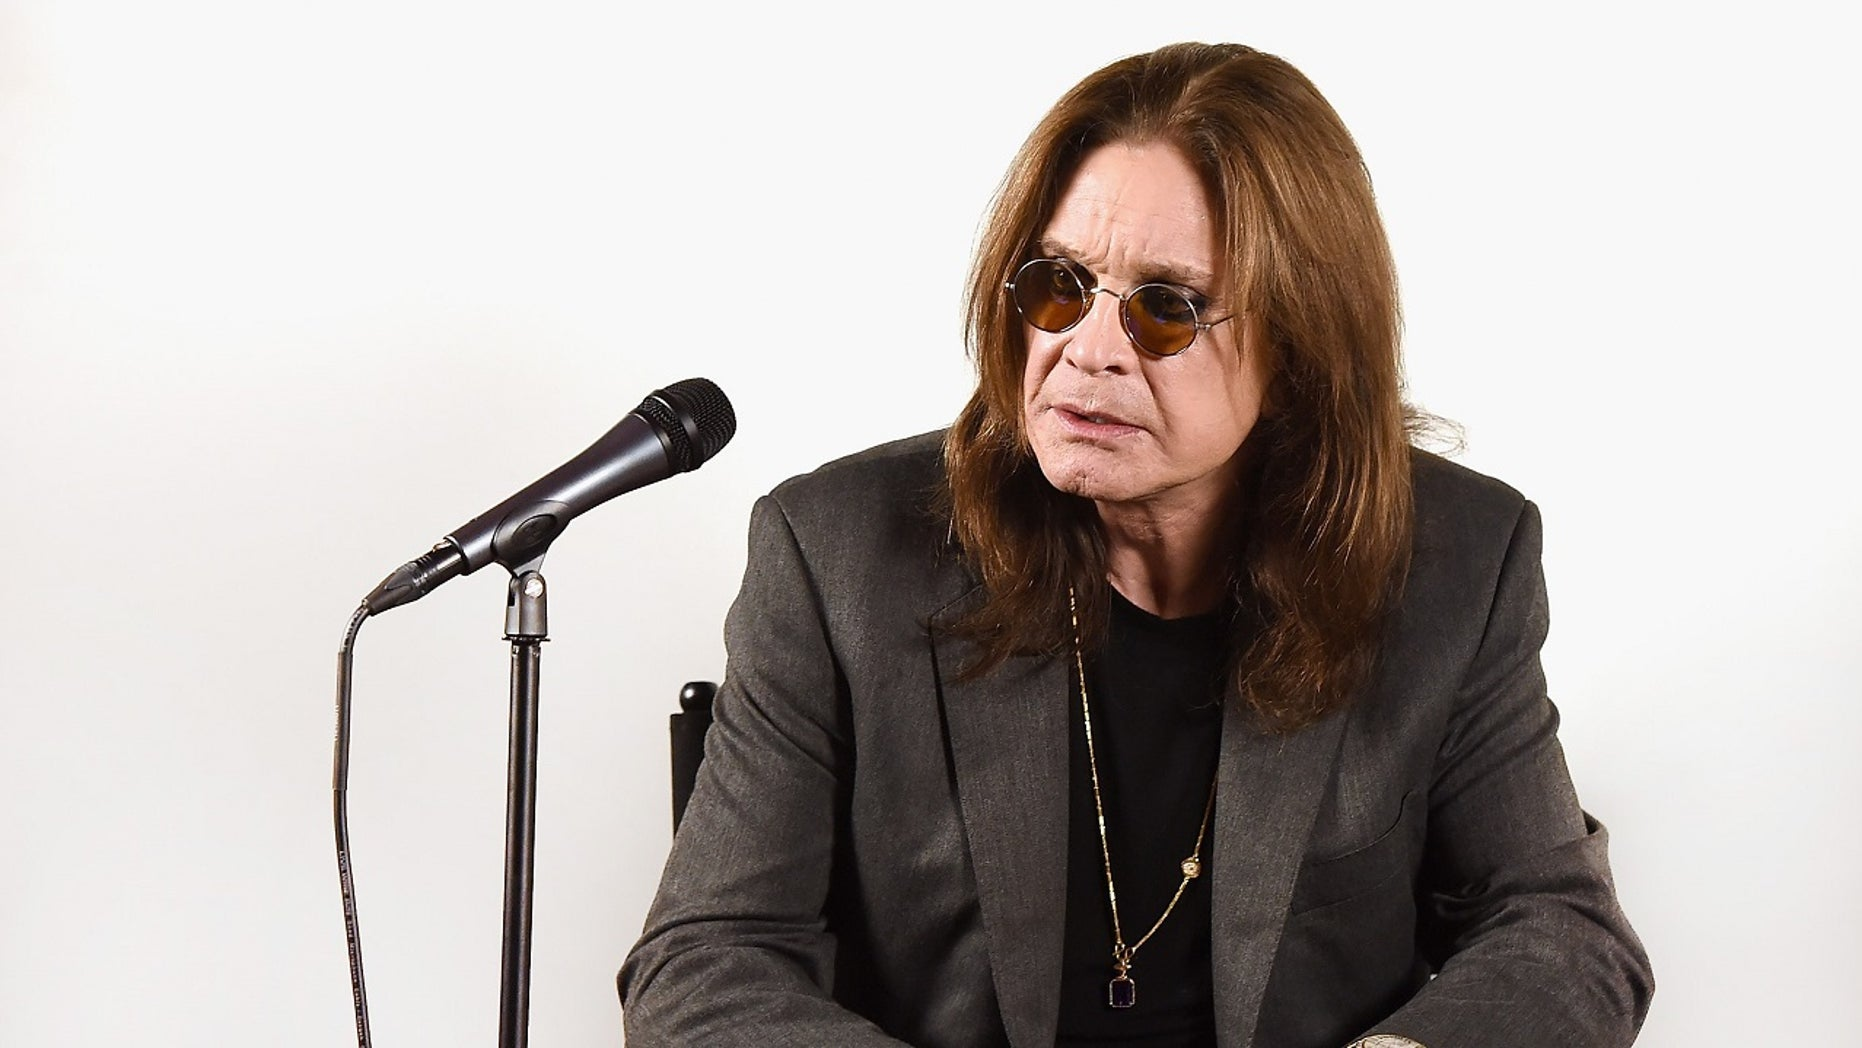 Ozzy Osbourne, 69, postponed his Mountain View concert until Oct. 16.